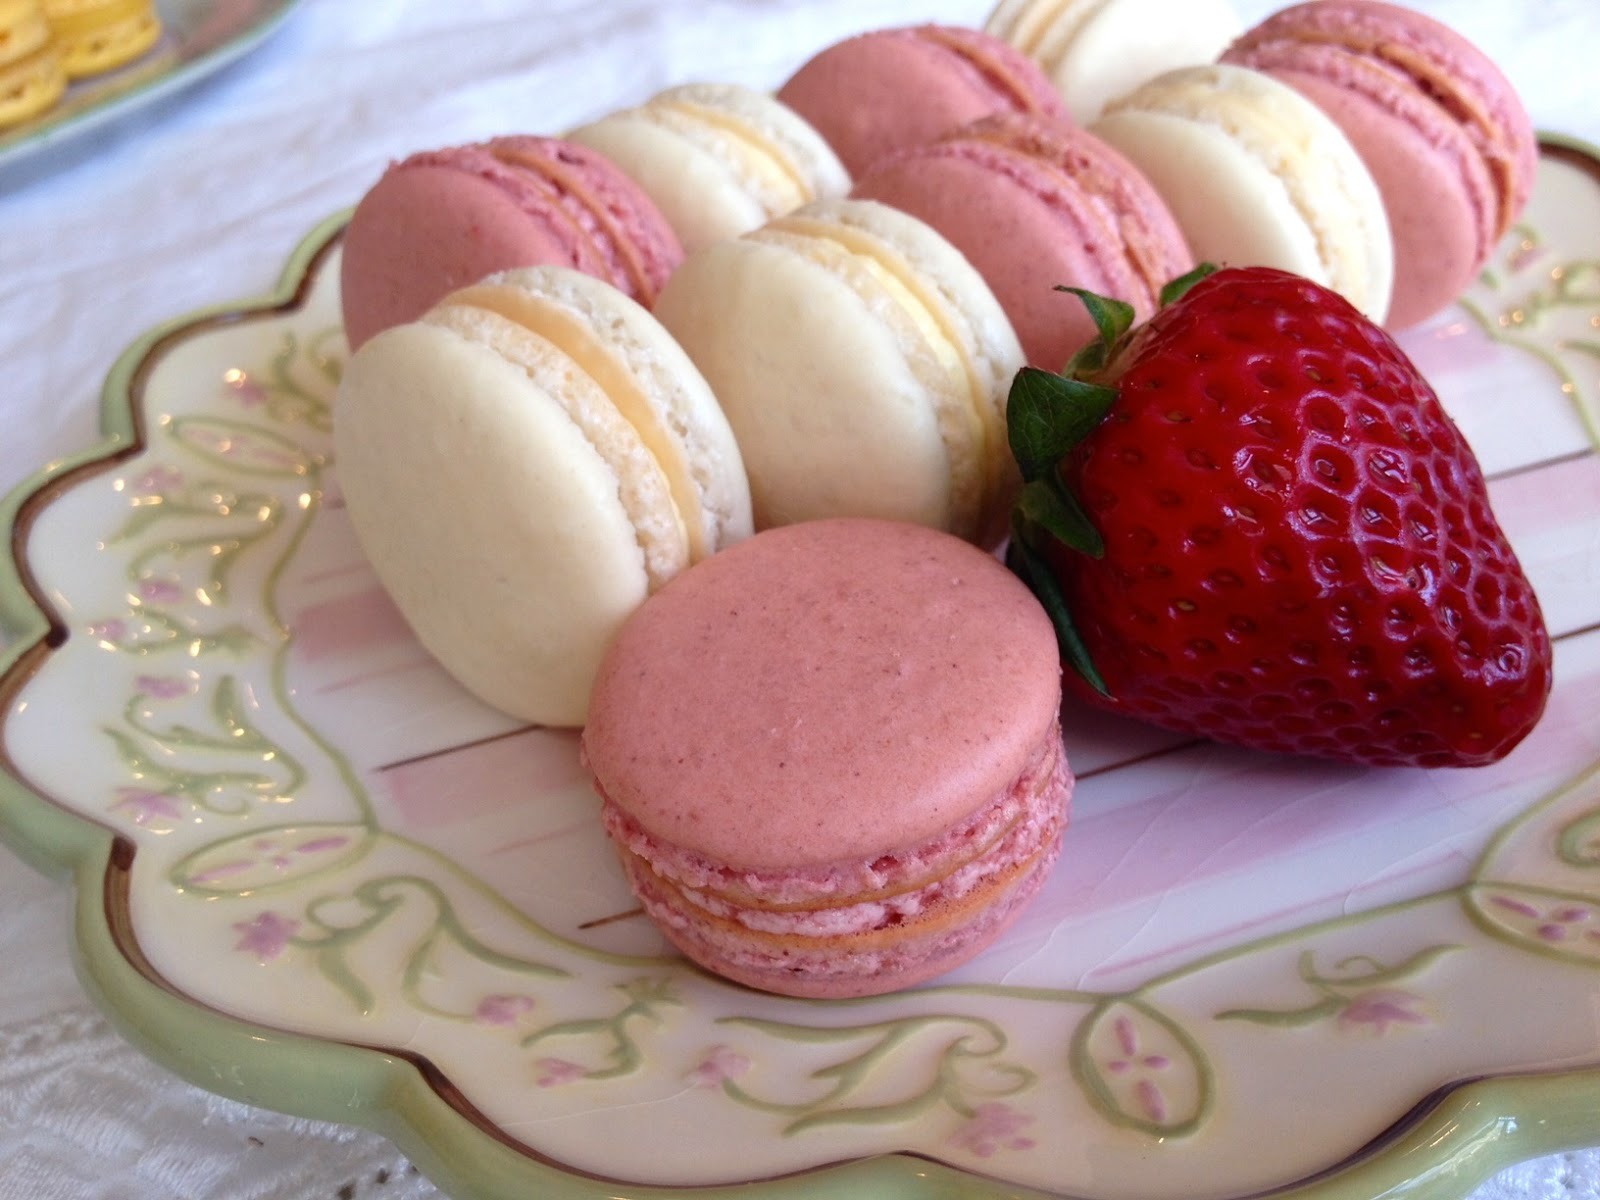 My Favorite Recipes: Strawberry Macarons